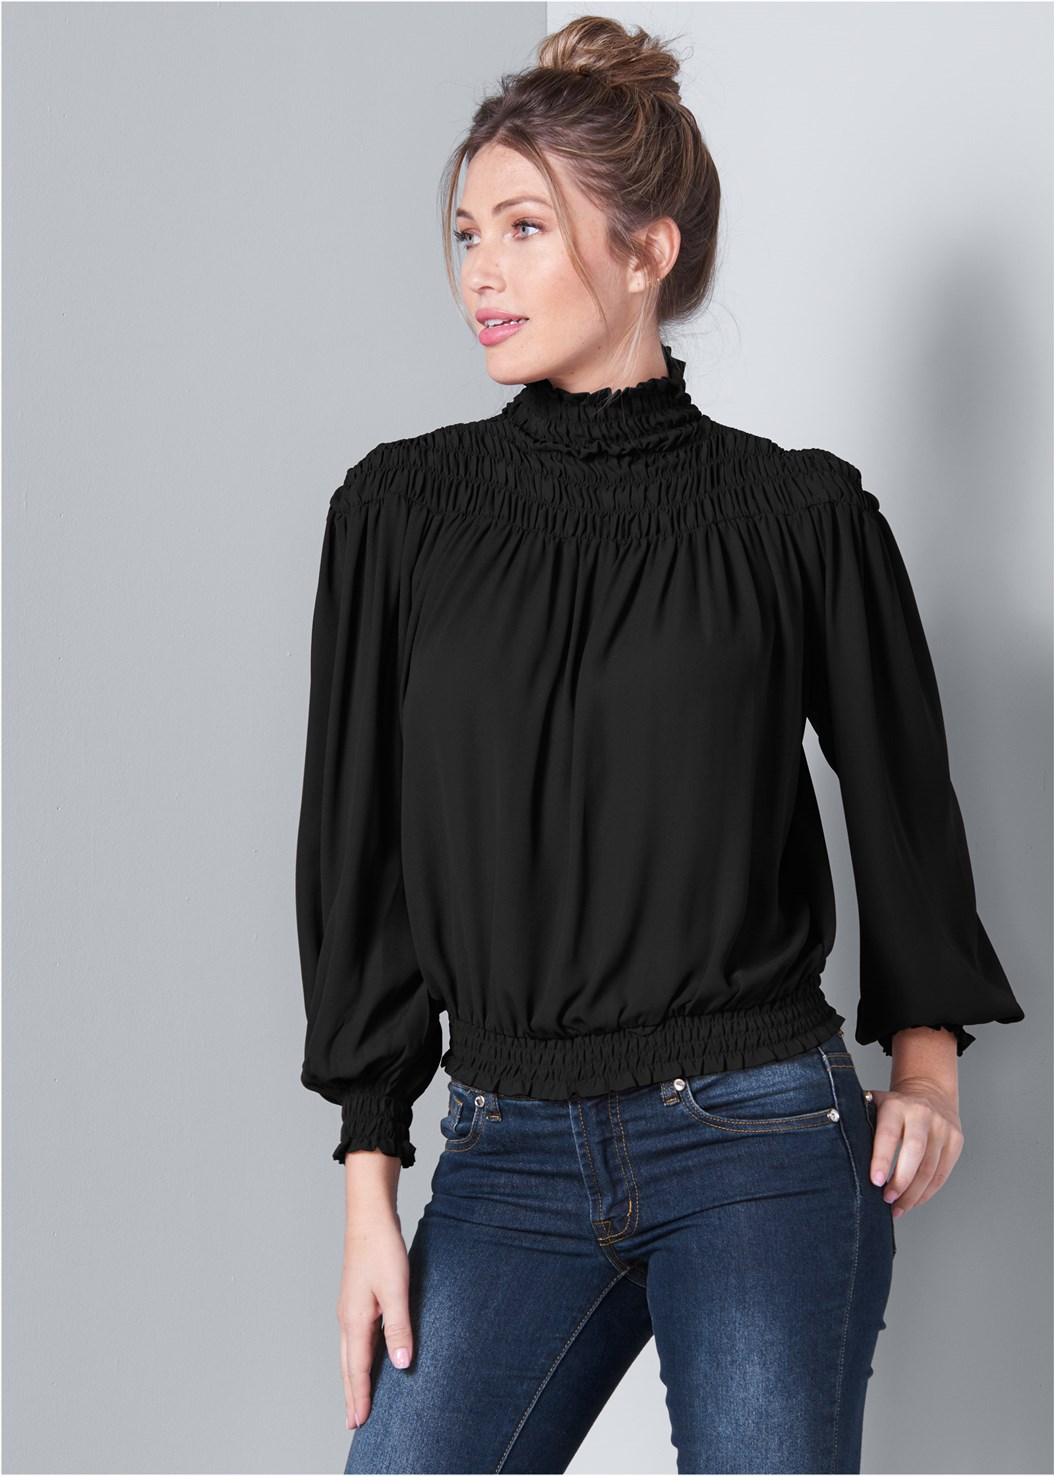 Smocked Detail Top,Mid Rise Color Skinny Jeans,Mid Rise Slimming Stretch Jeggings,Lurex Lace Detail Bra